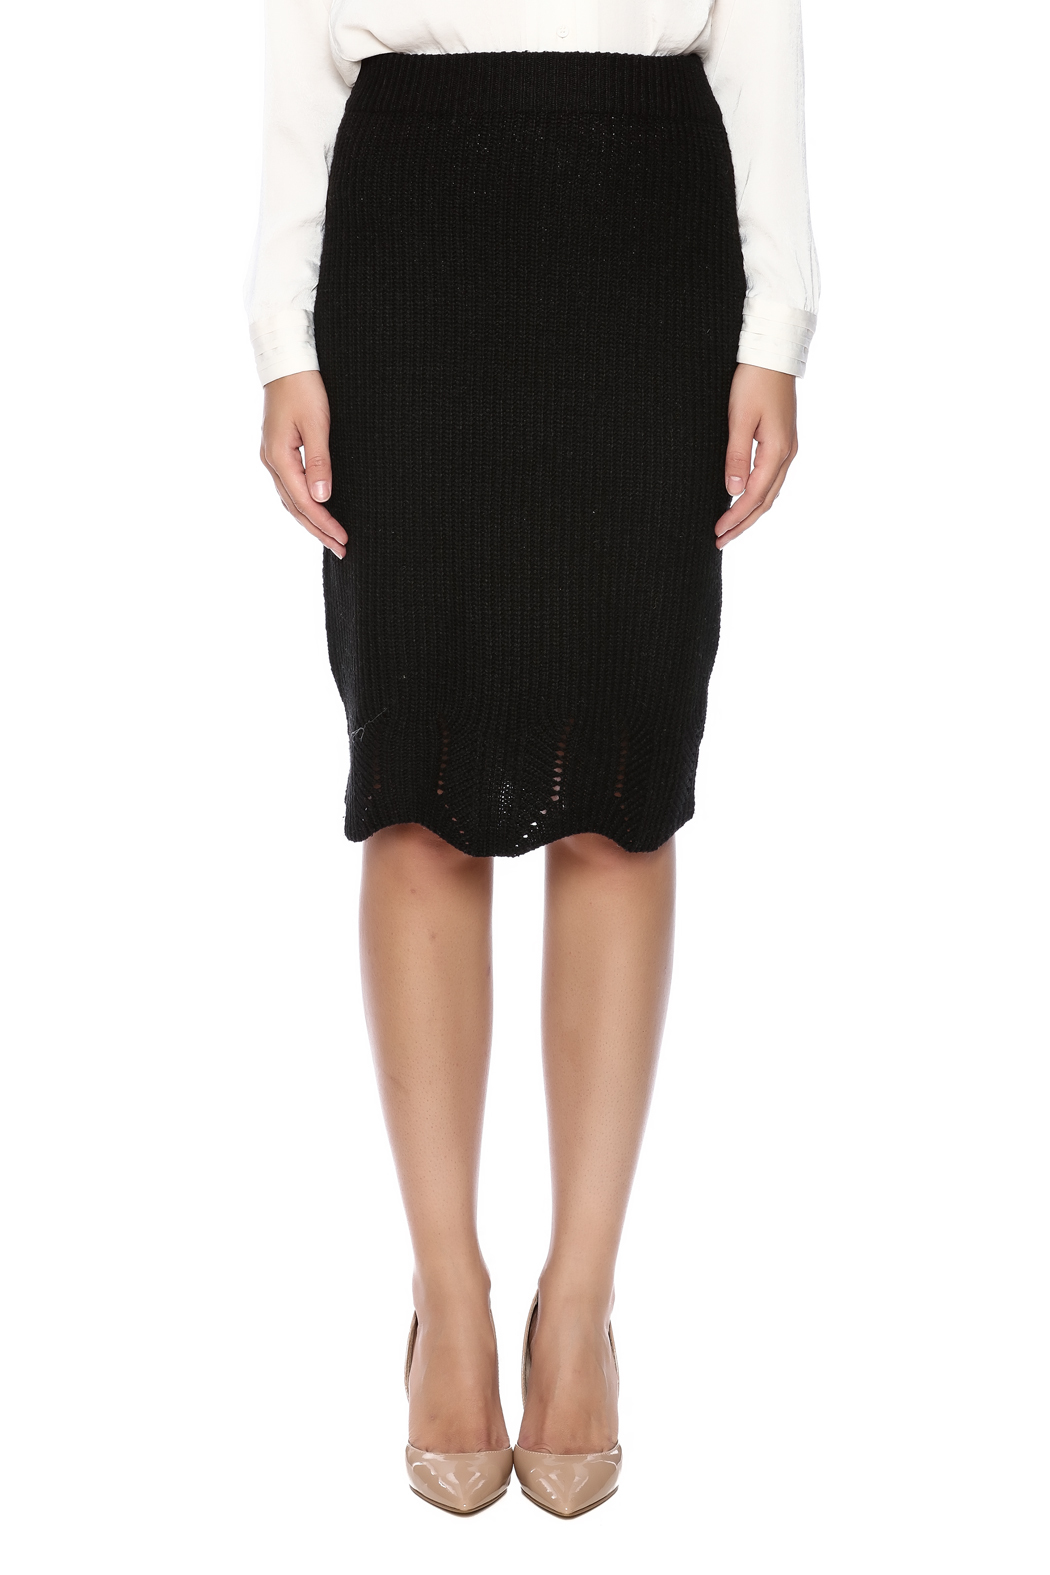 LoveRiche Knit Skirt - Side Cropped Image